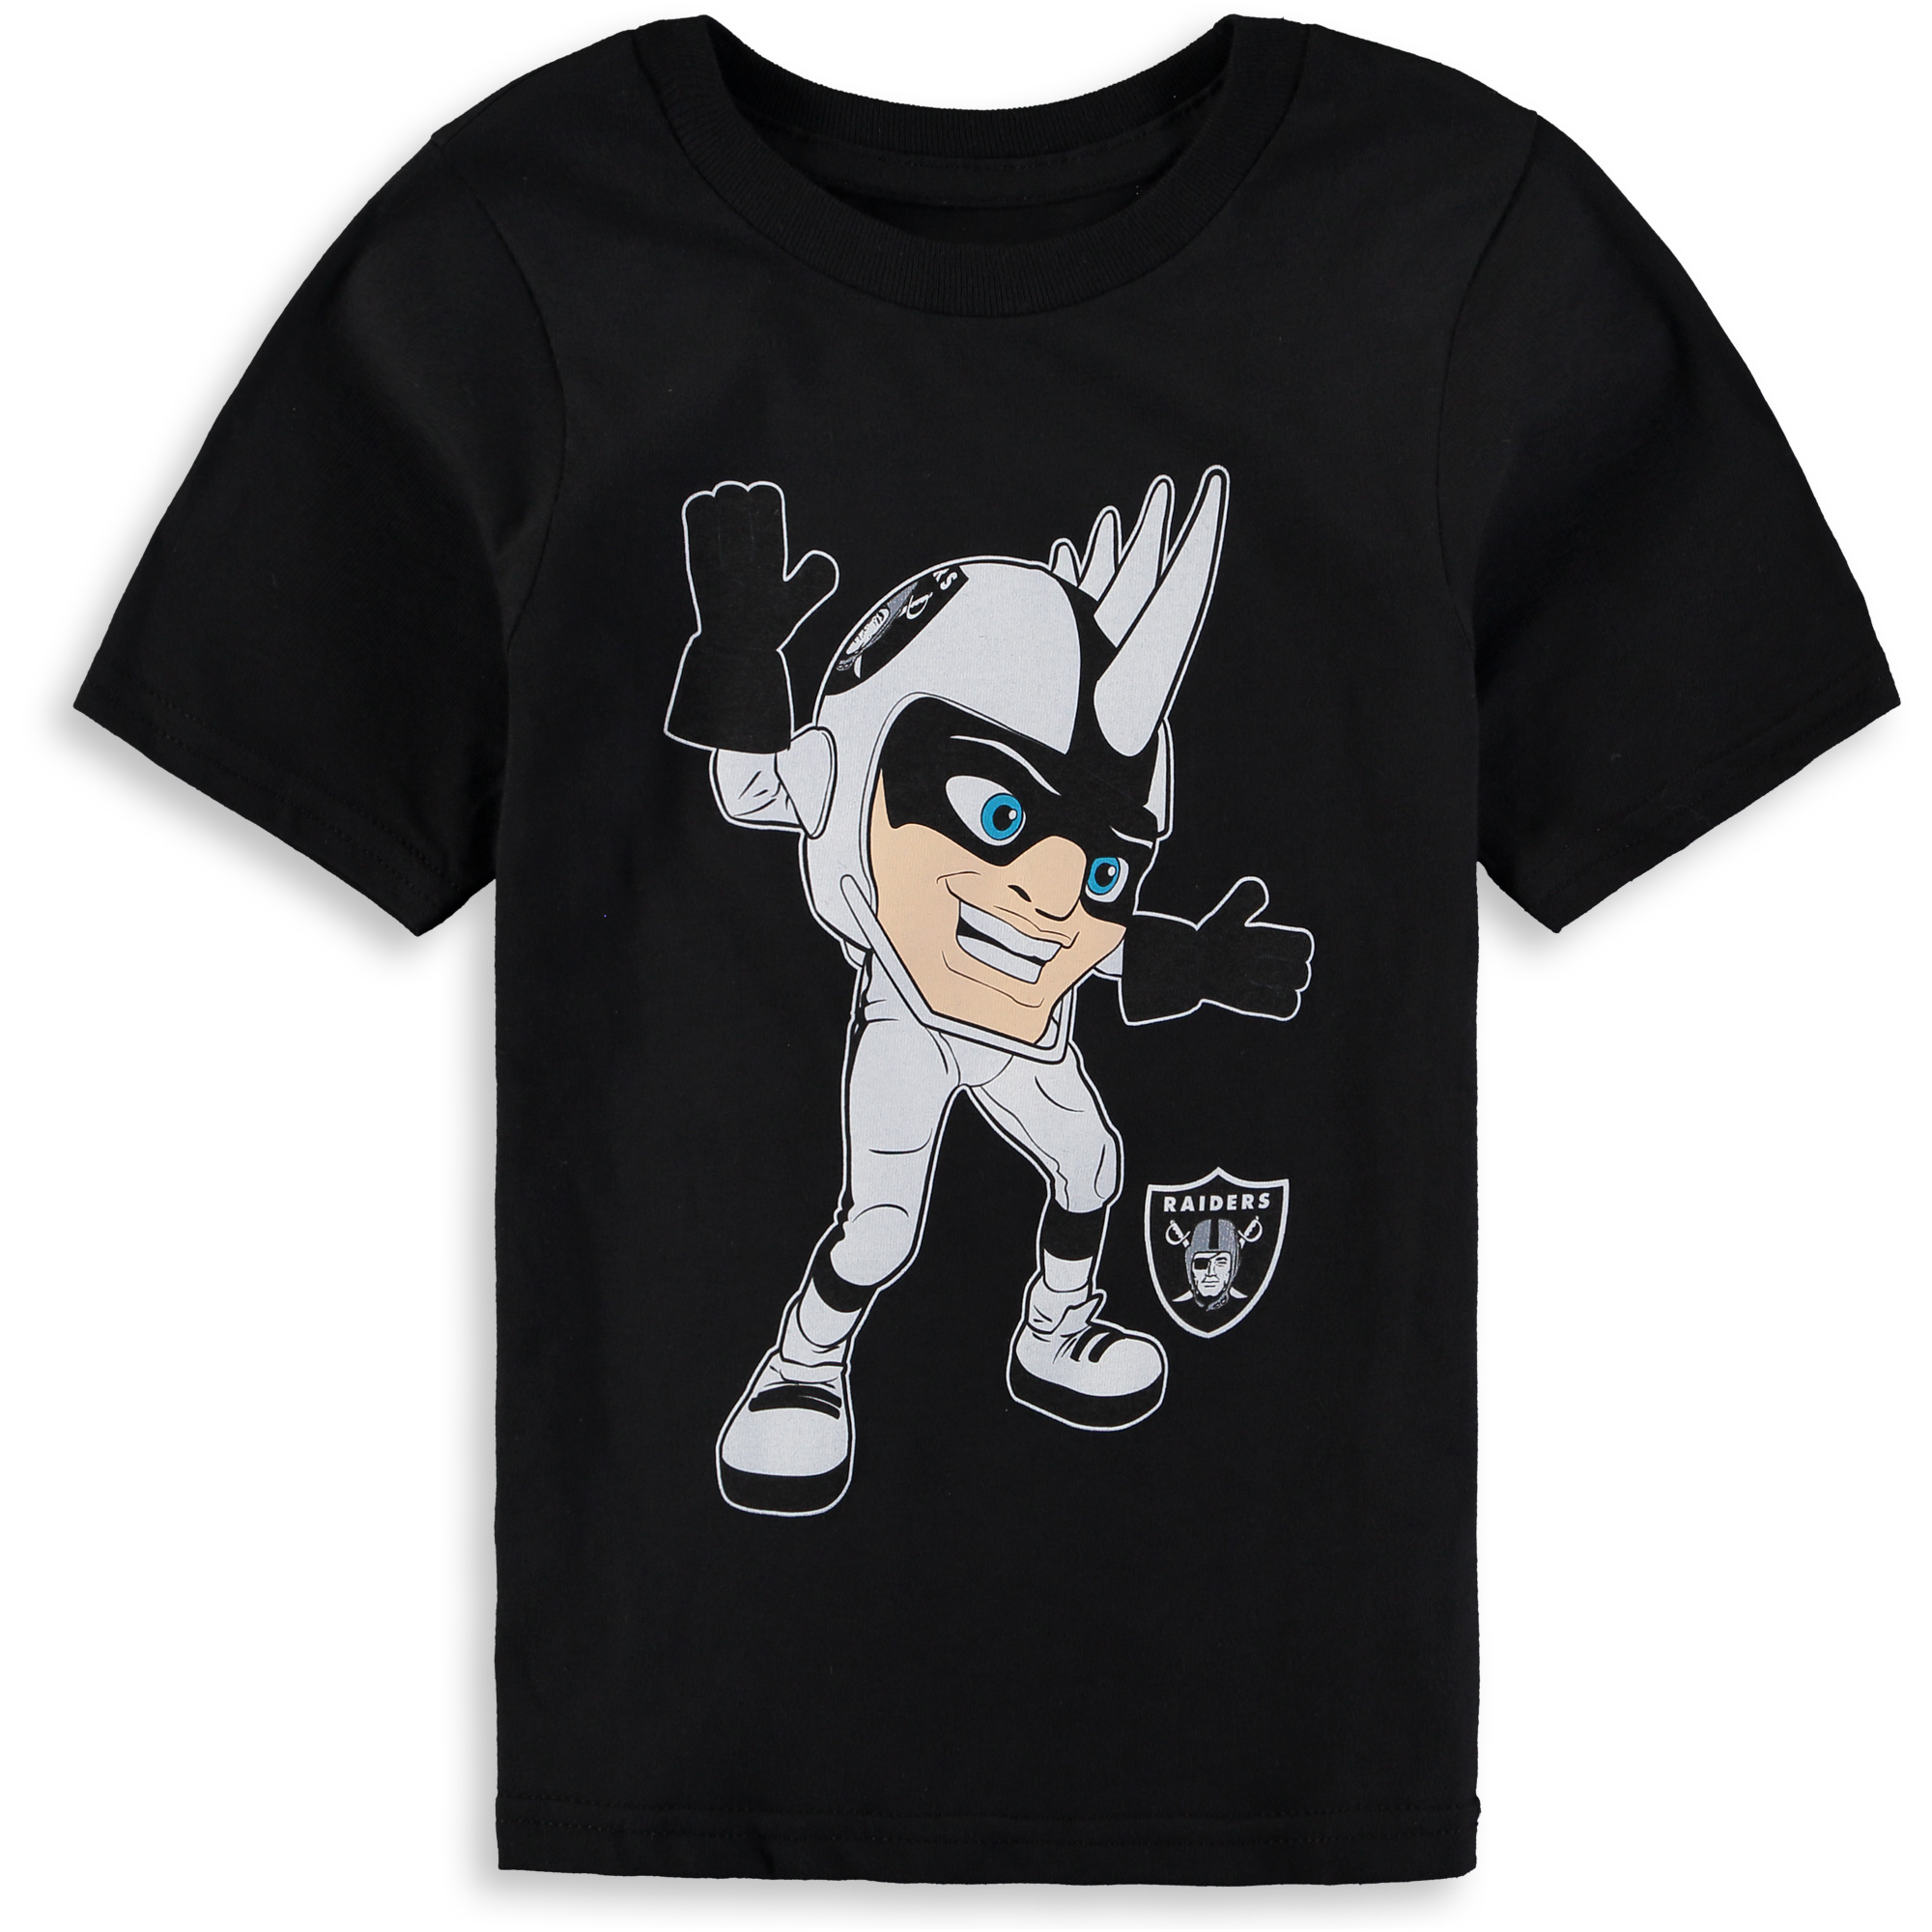 Oakland Raiders Preschool Standing Mascot T-Shirt - Black